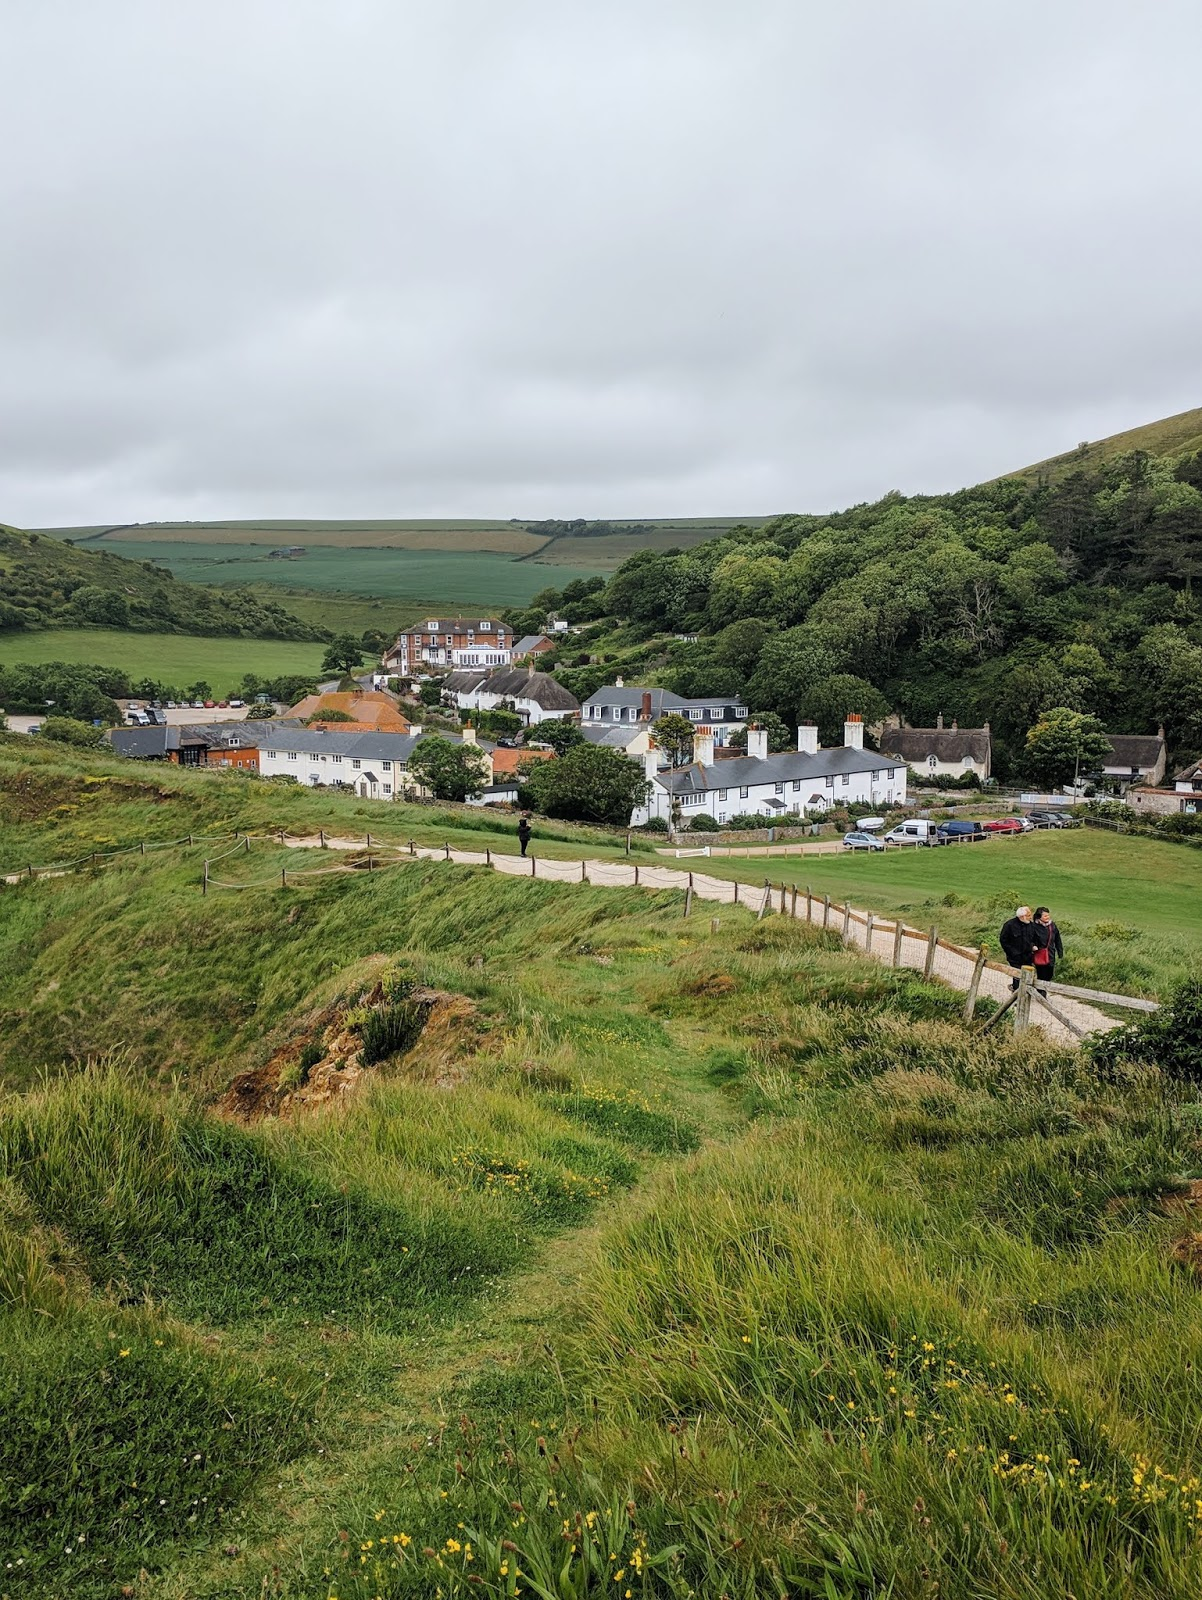 the charming town with white and brick houses by Lulworth Cove